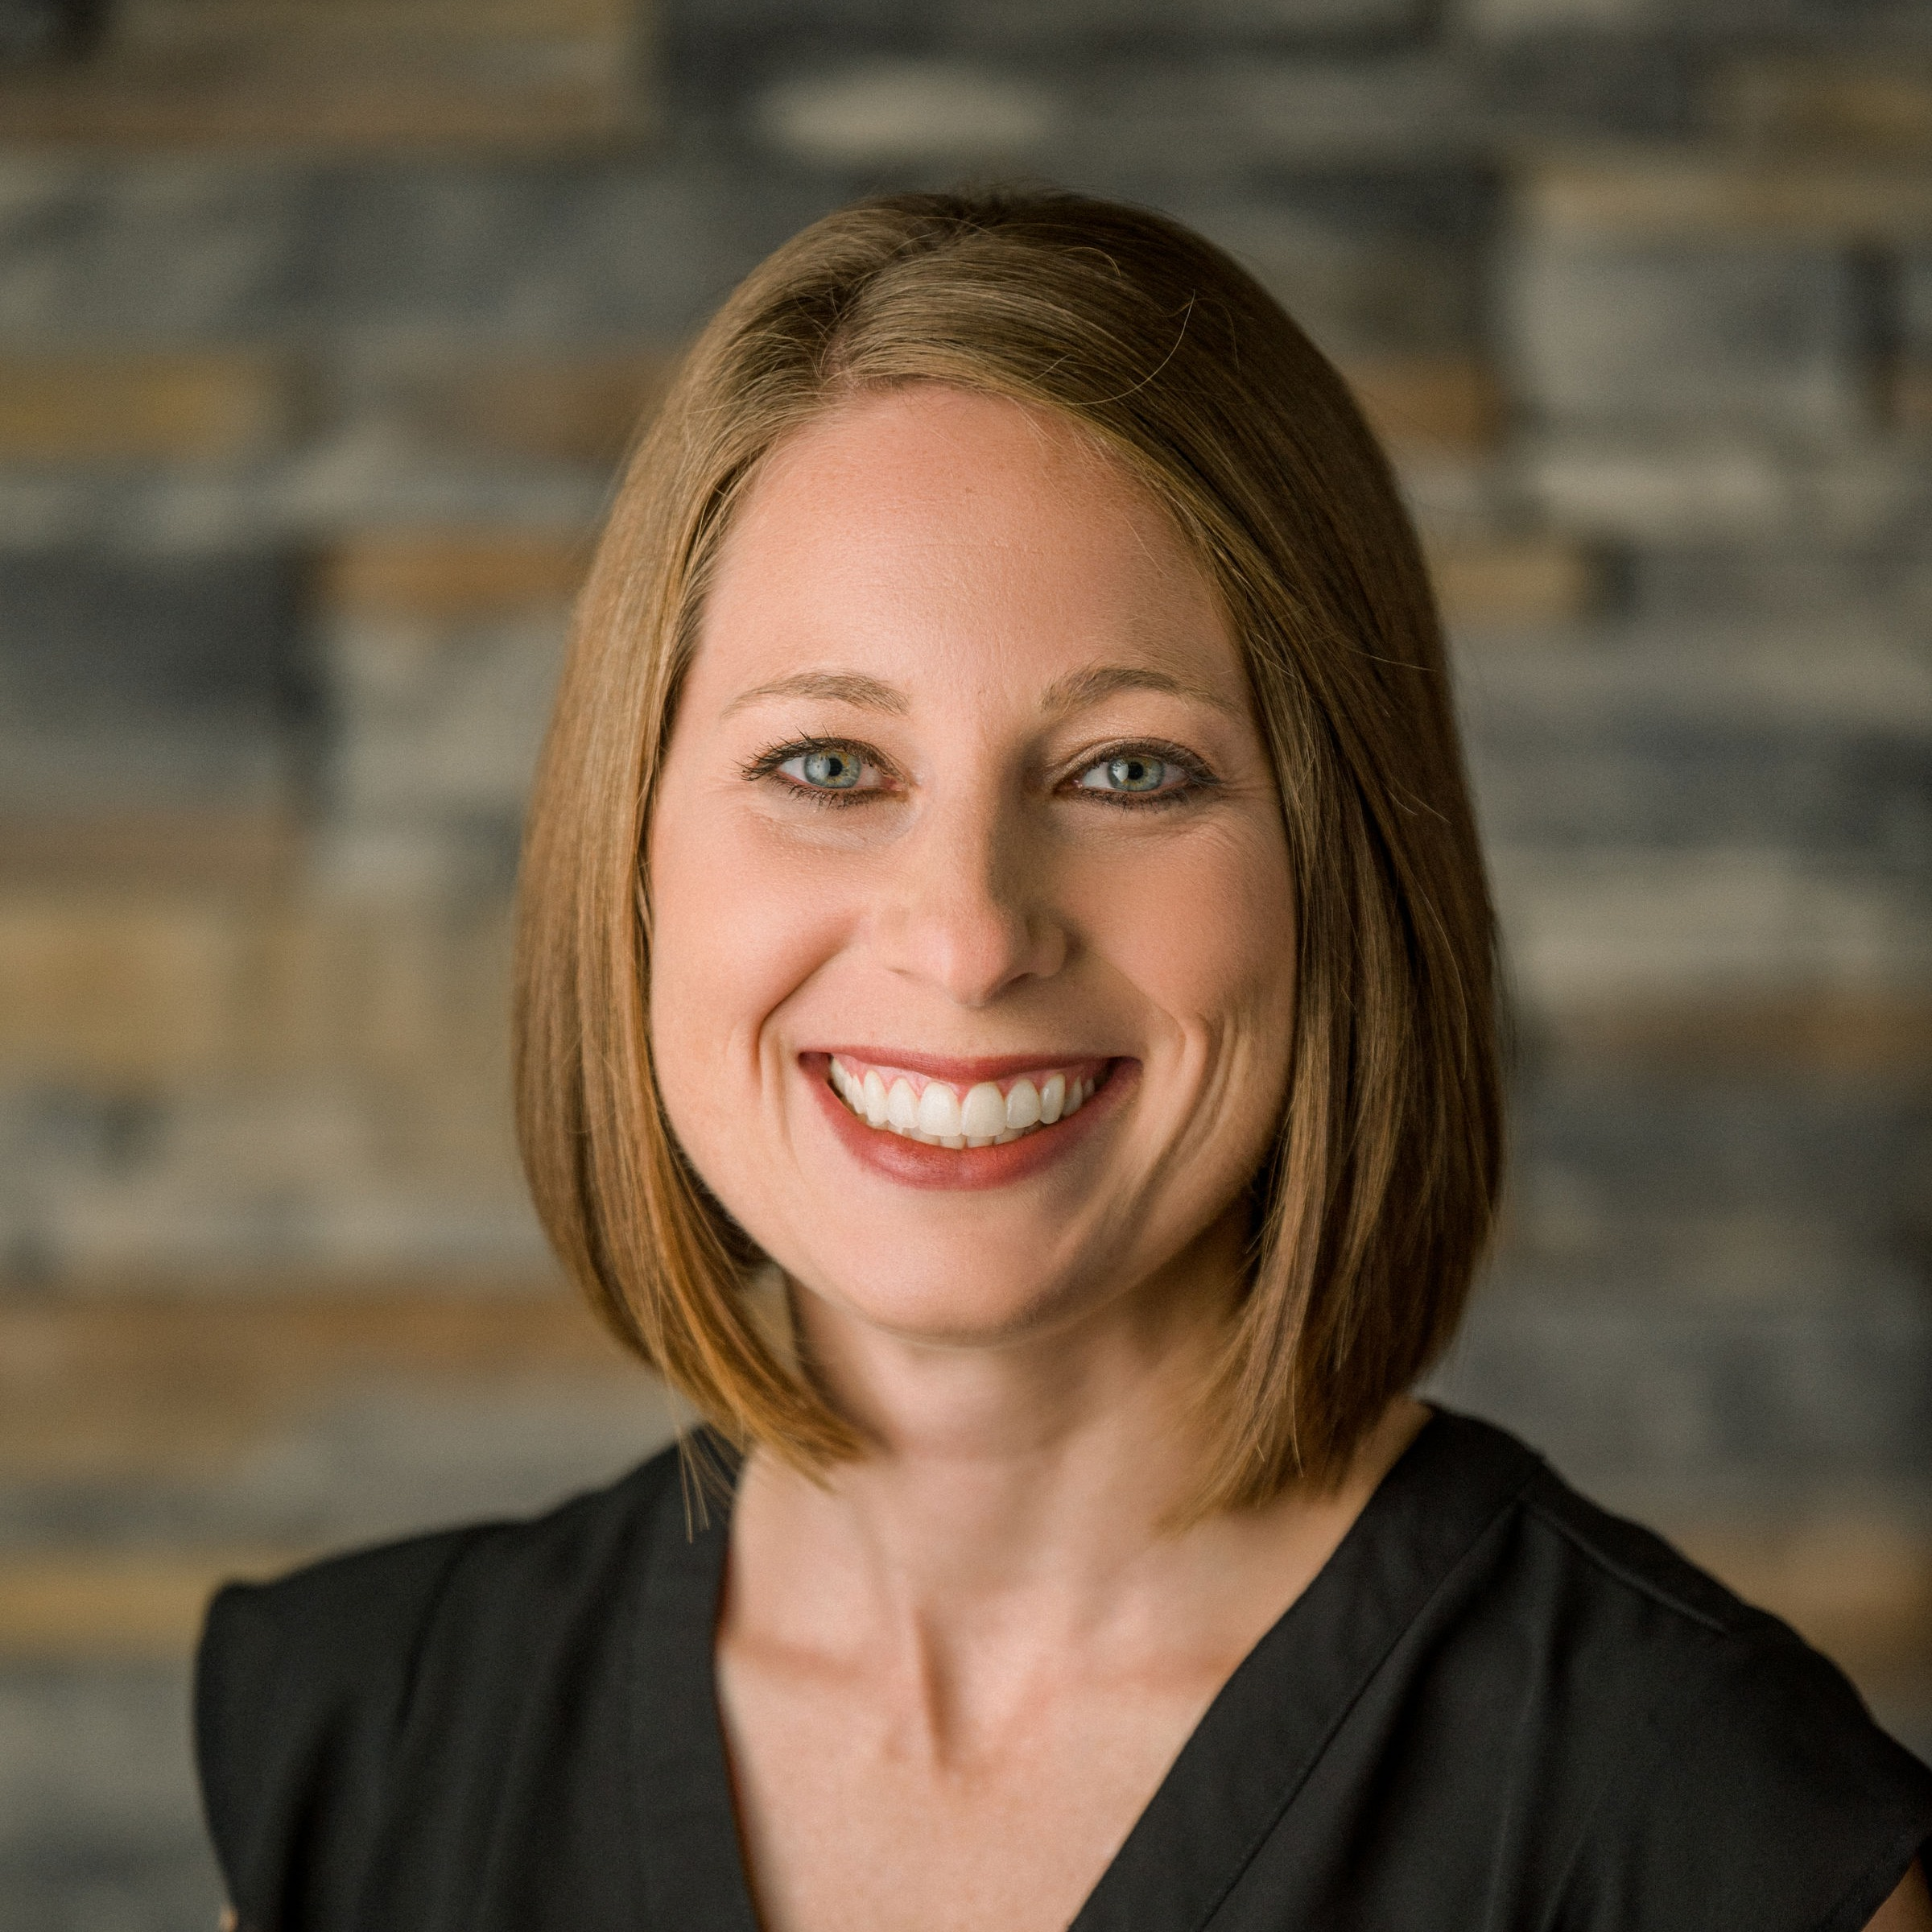 Lindsey Y. of Orthodontic Specialty Services